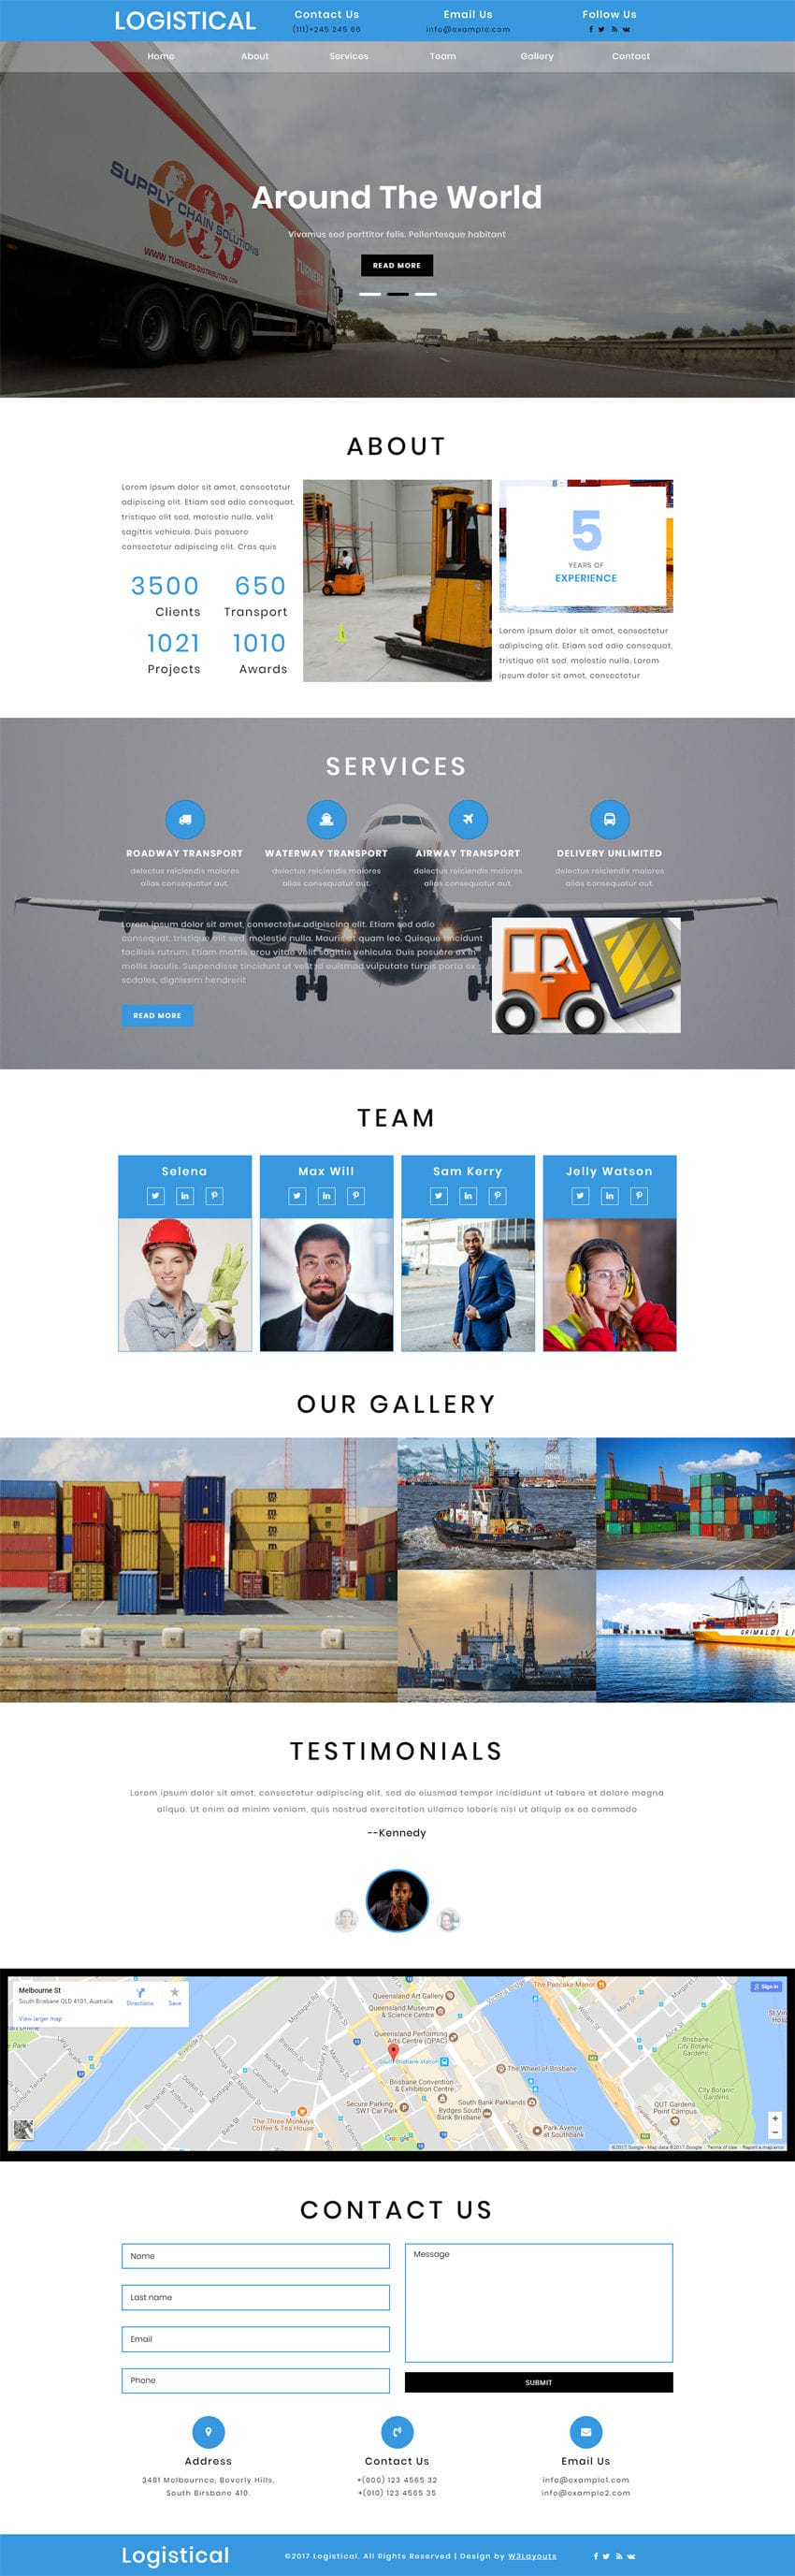 Download Logistical, a transportation & logistics website template. It is entirely built in Bootstrap framework, HTML5, CSS3 and Jquery and looks stunning.